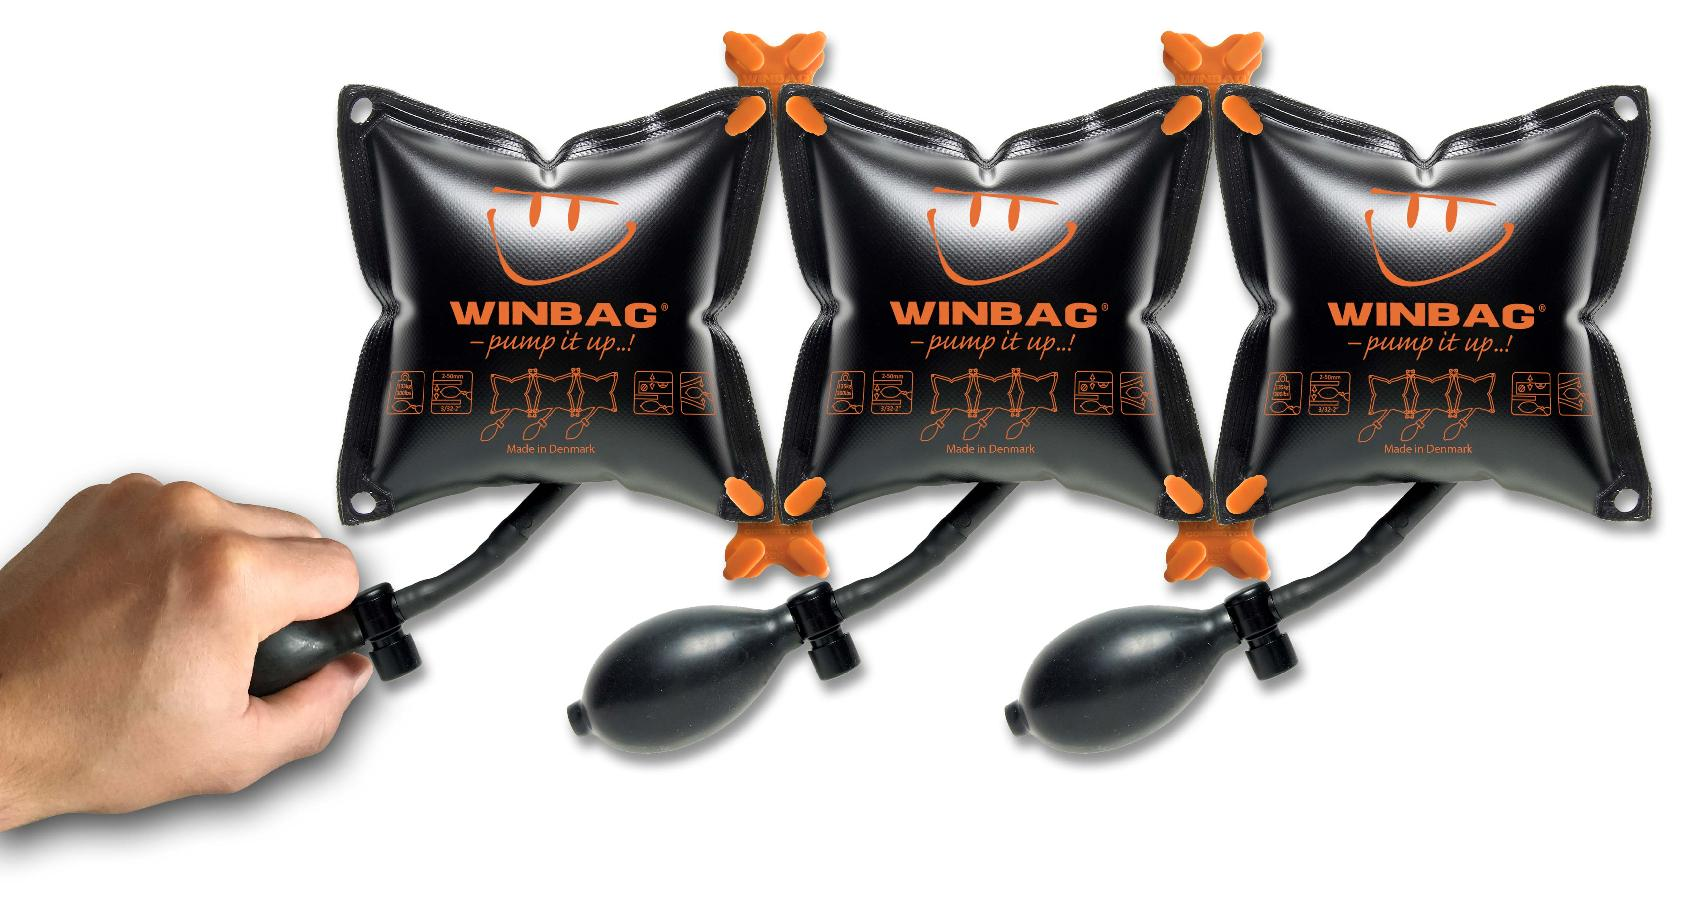 WINBAG CONNECT